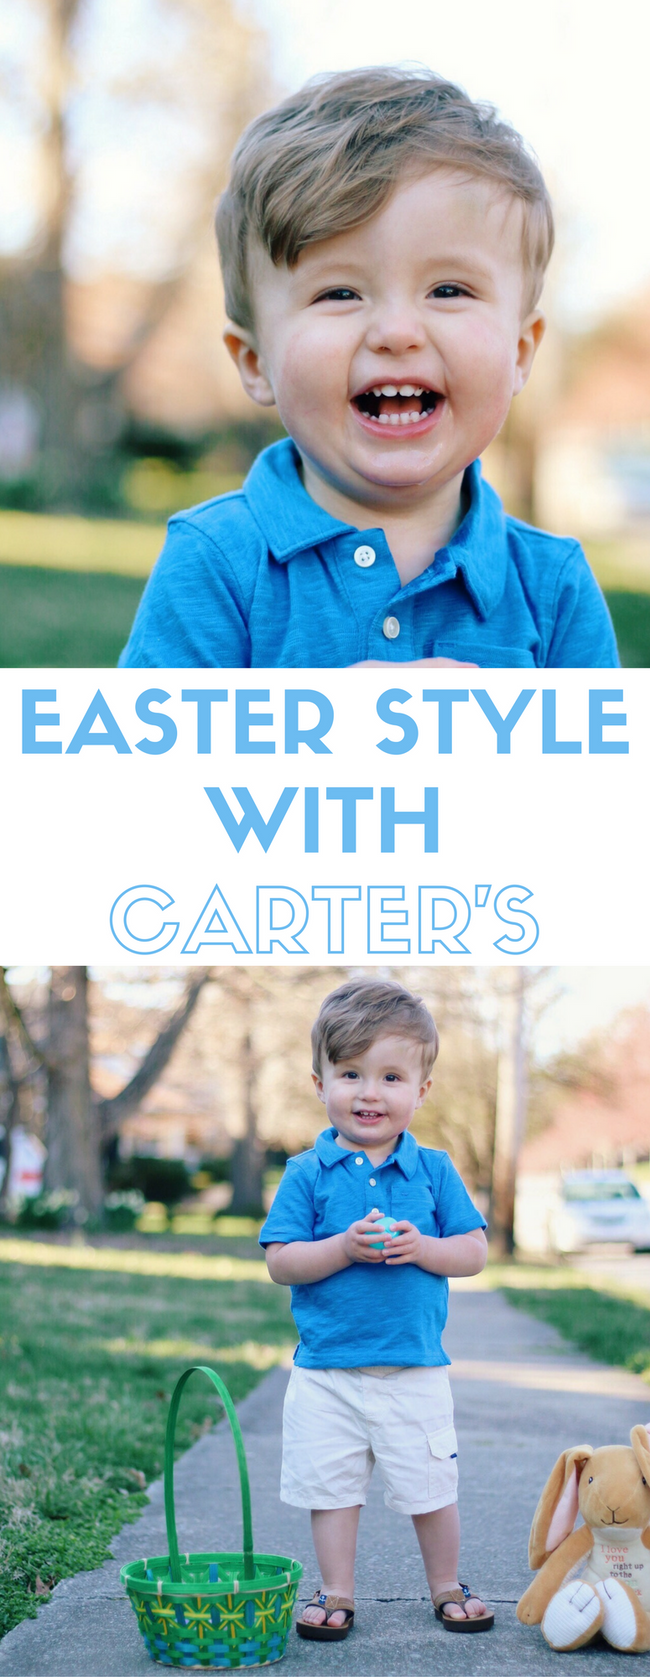 Easter Style with Carter's